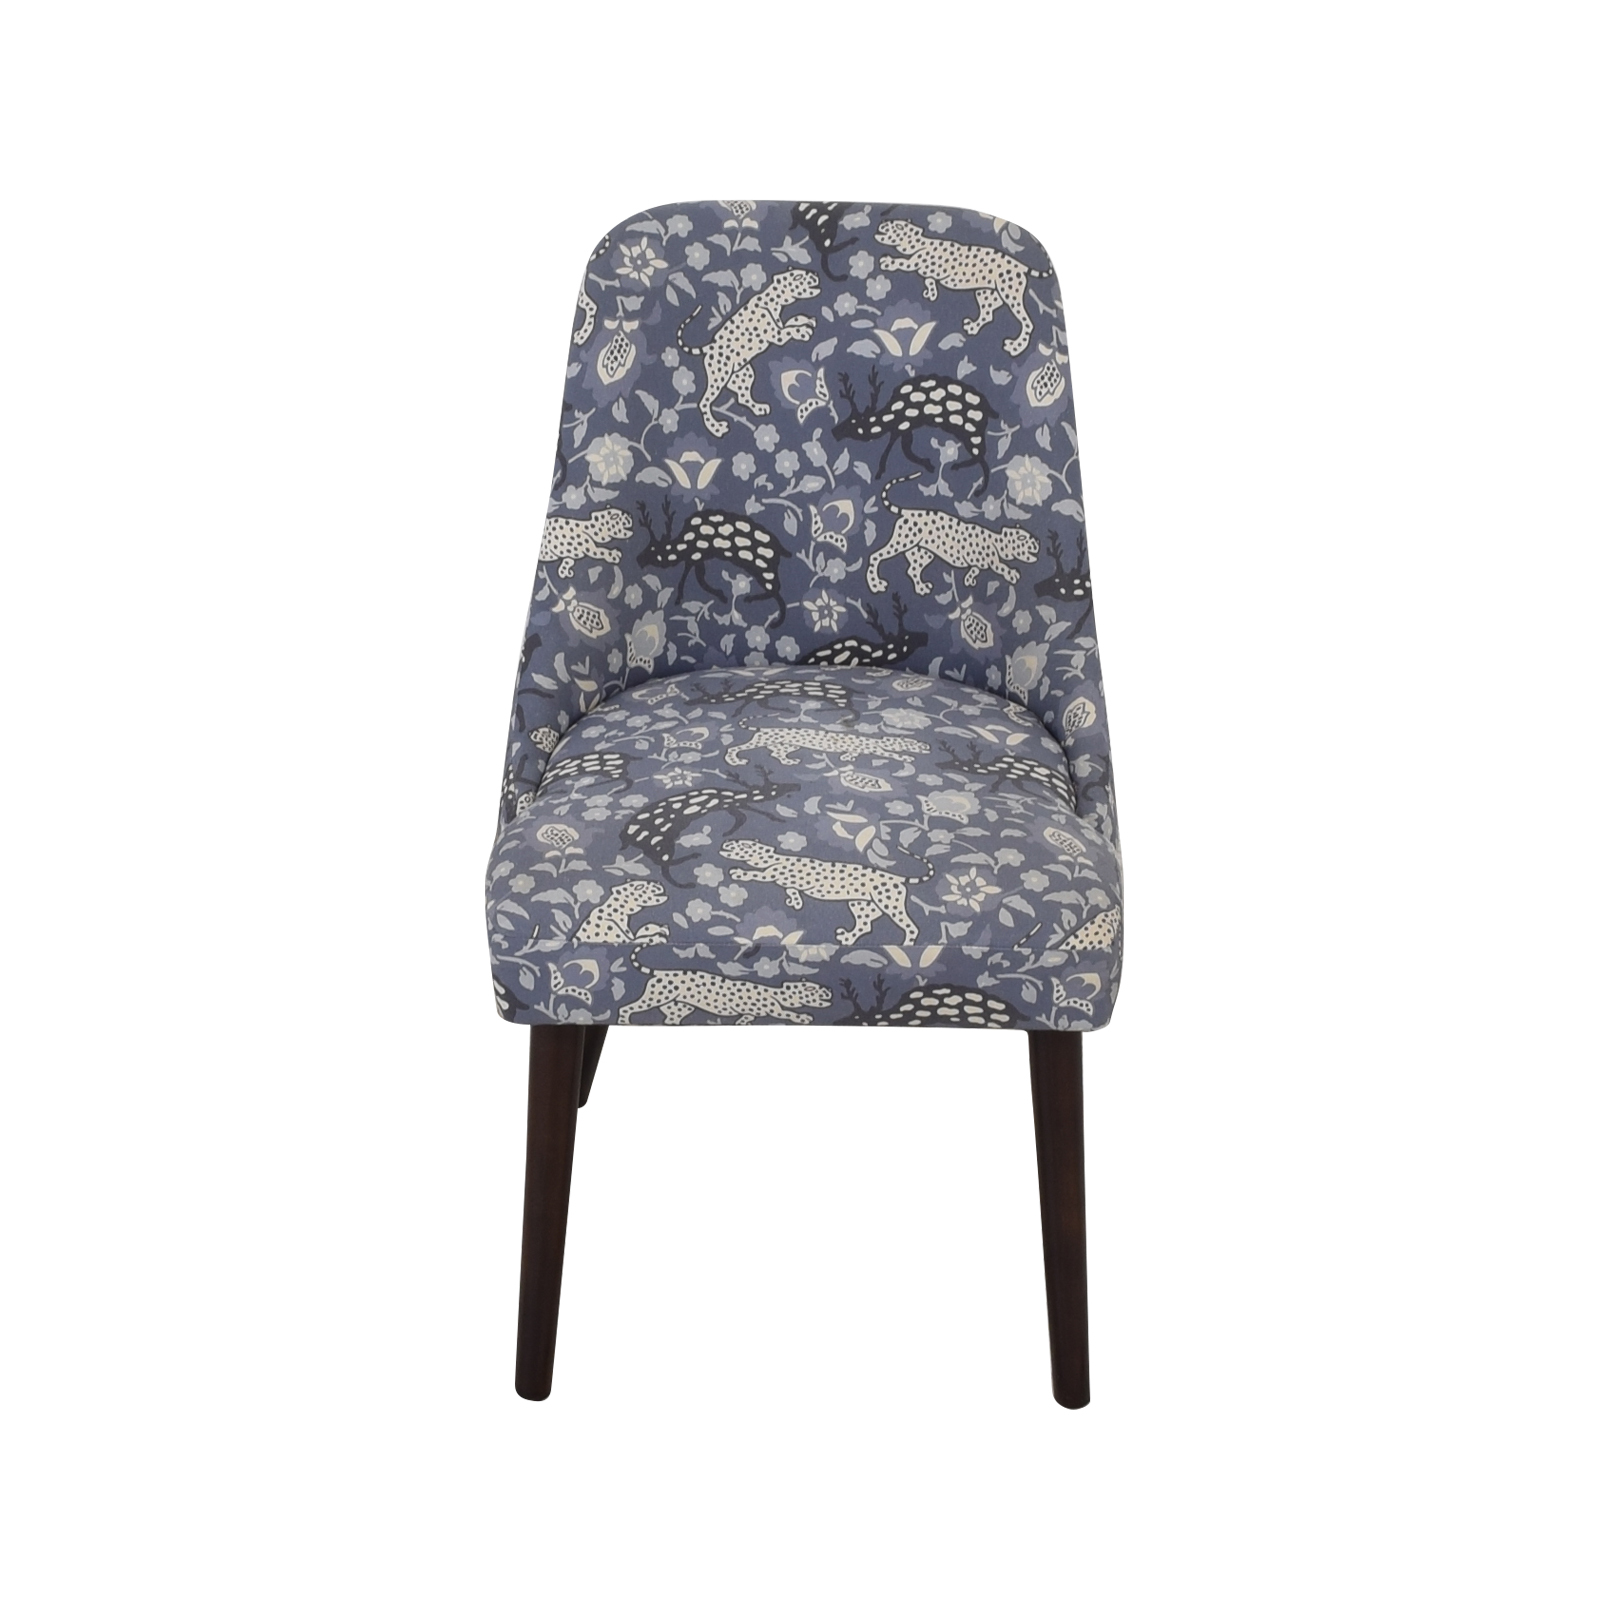 Skyline Furniture Skyline Patterned Upholstered Dining Chair coupon